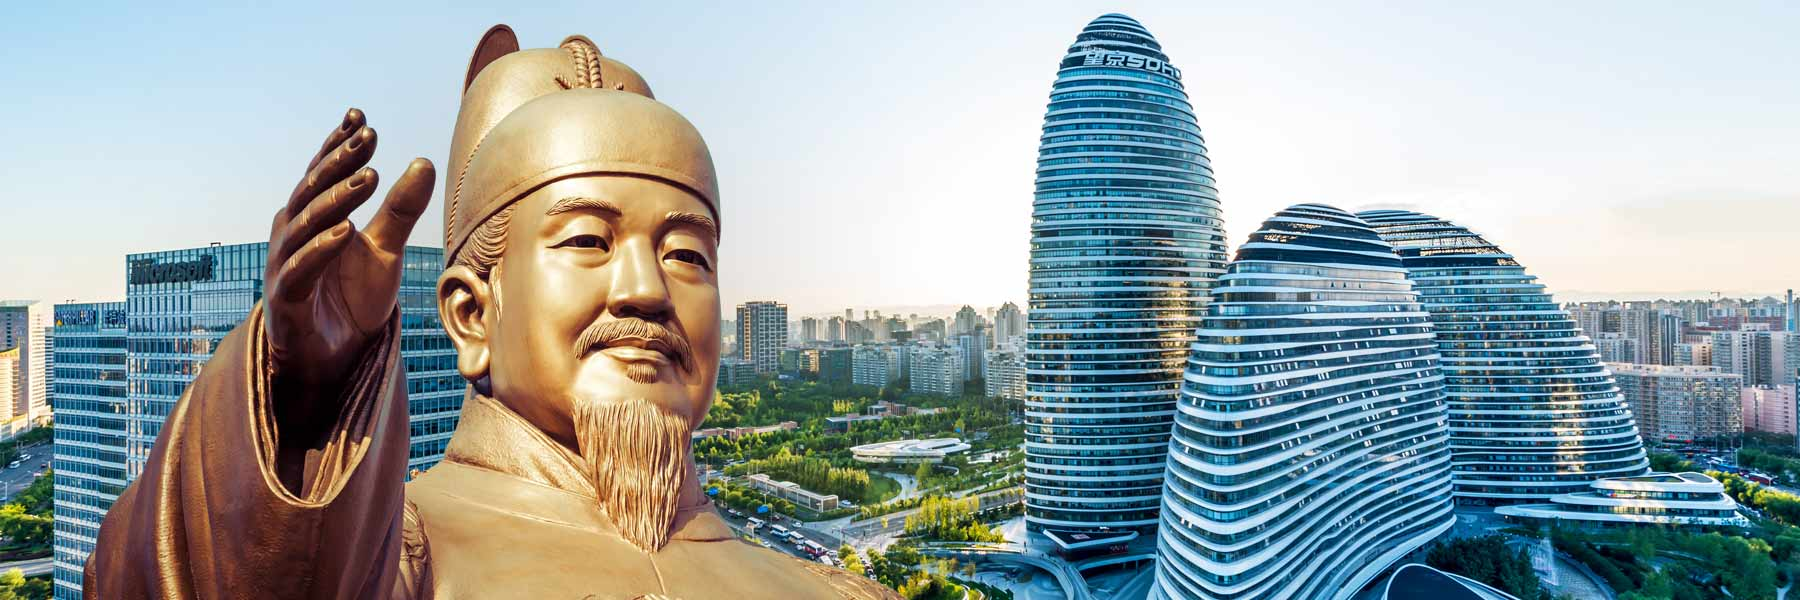 The Beijing skyline and a statue of Sejong the Great, creator of the Korean alphabet, in Seoul.